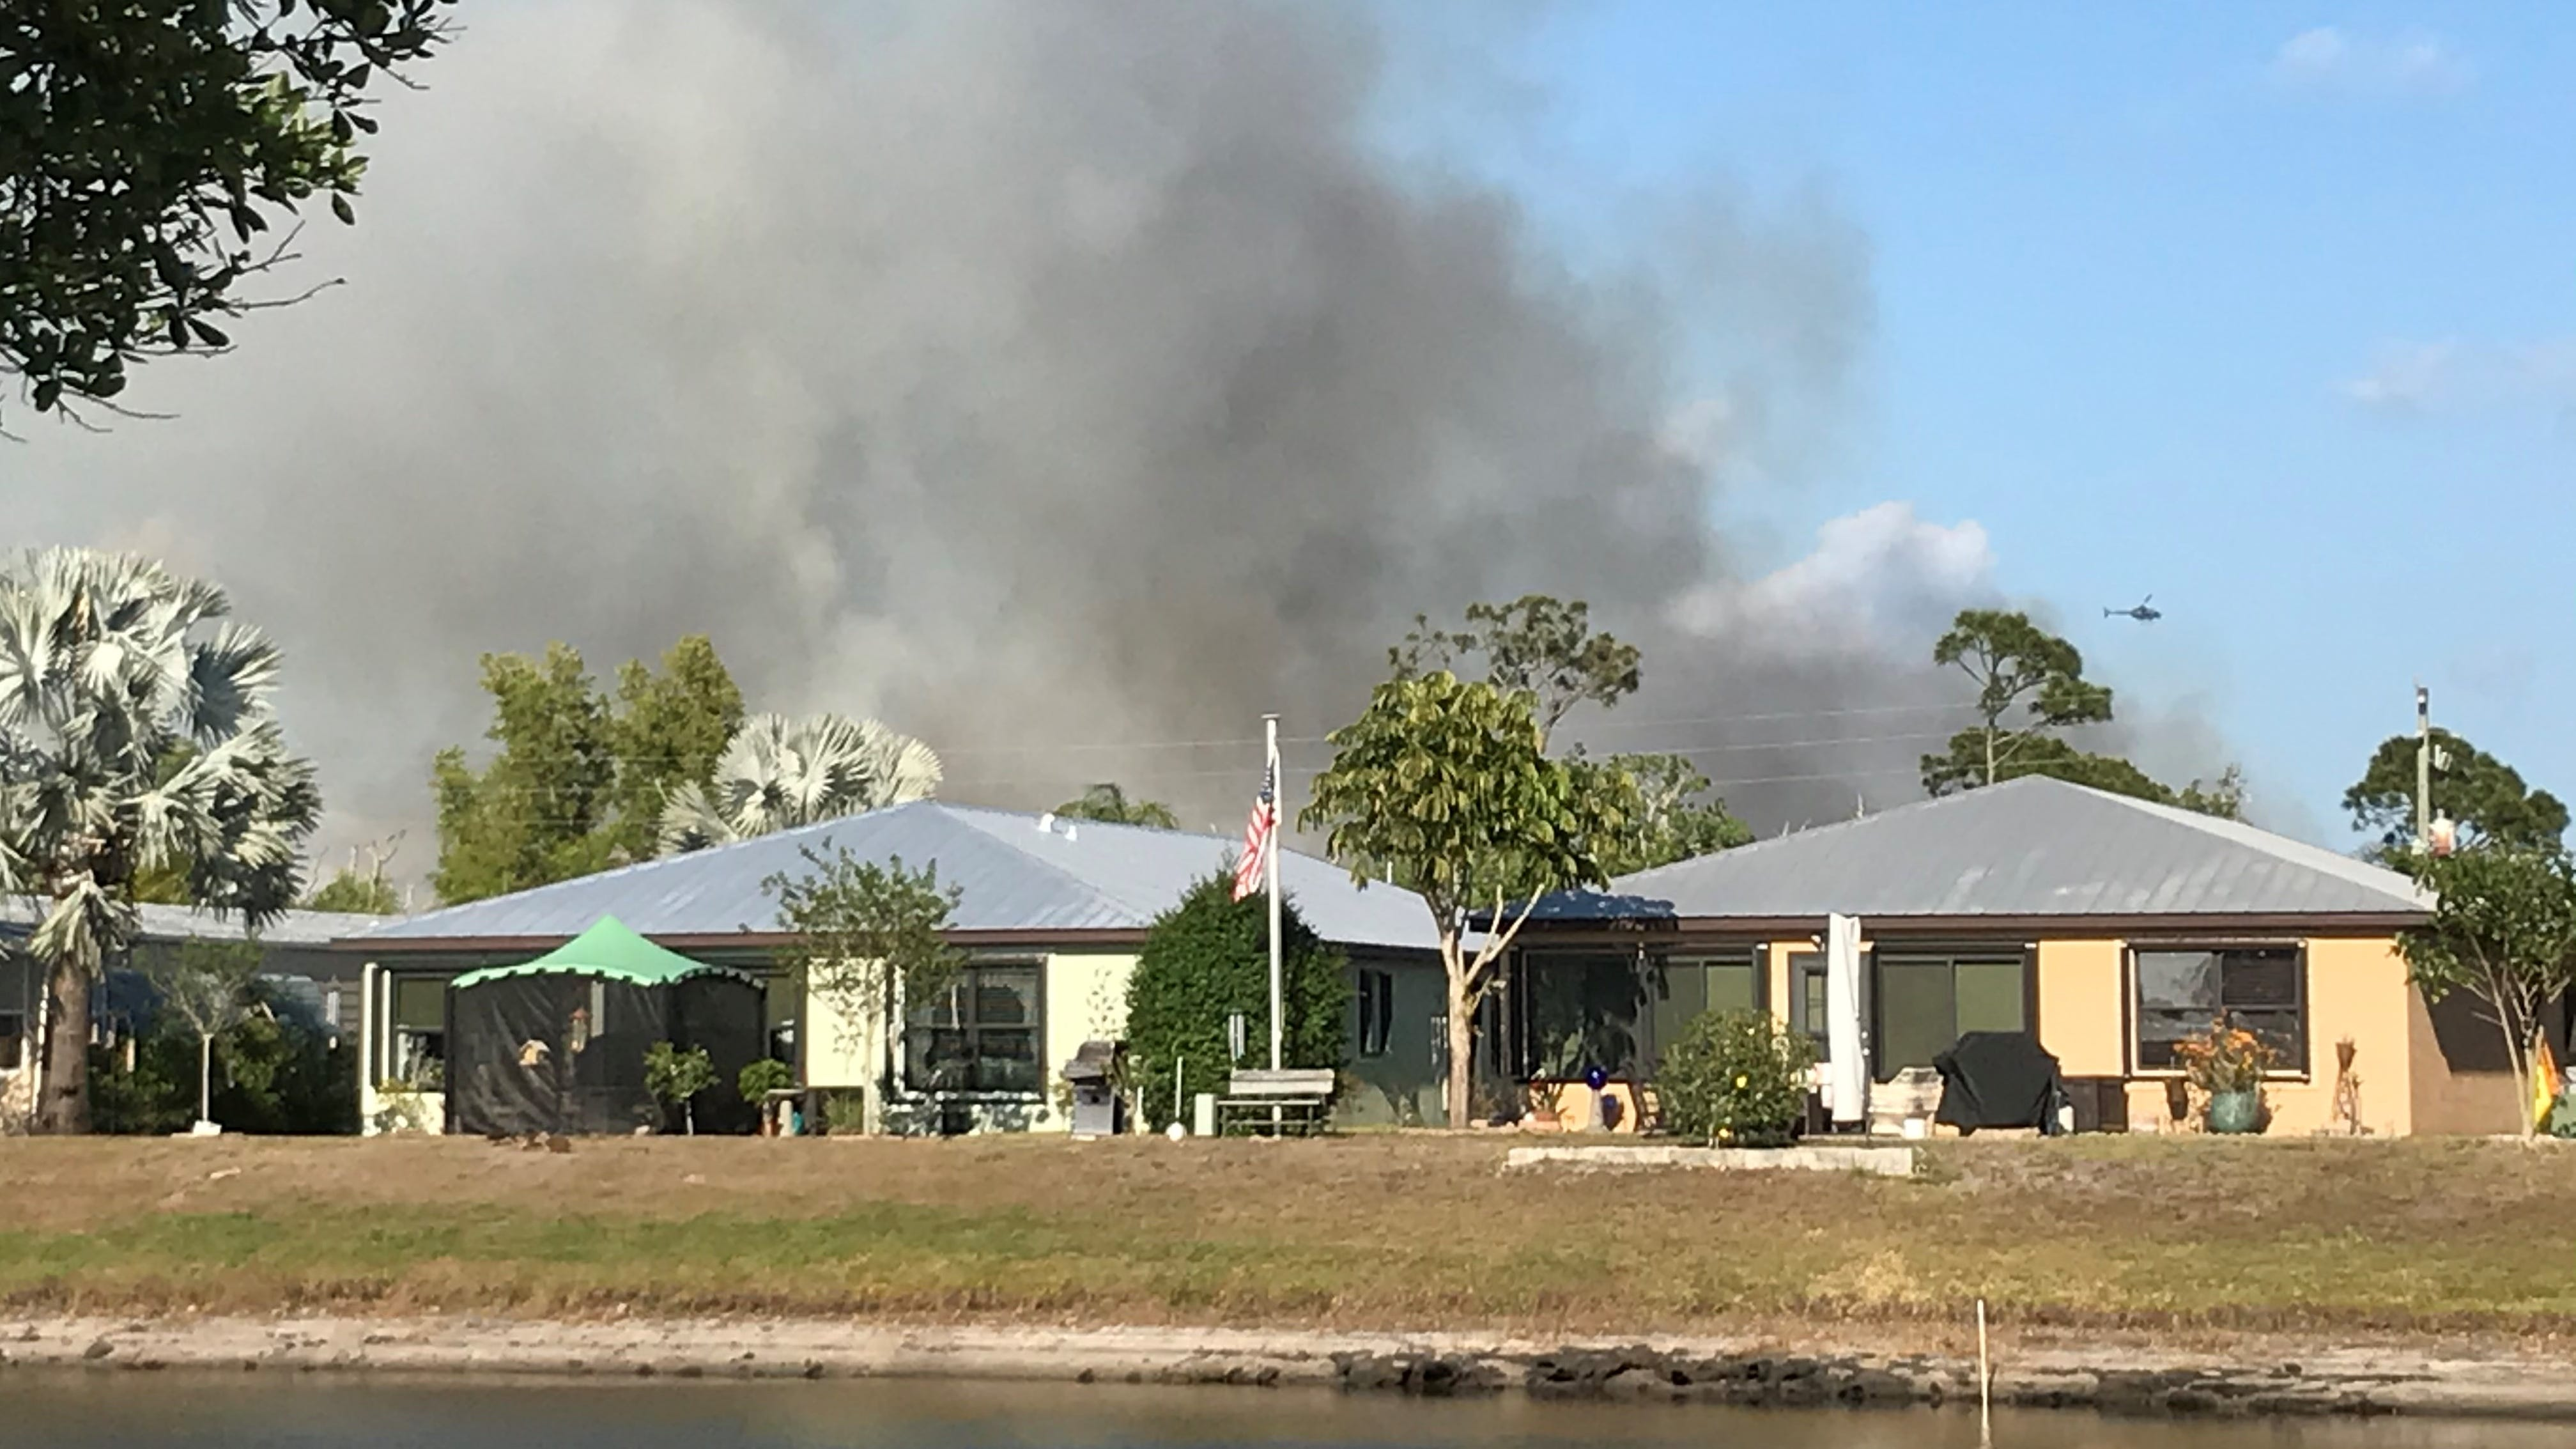 Fire agencies work to contain wildfire at Indian River-St. Lucie border